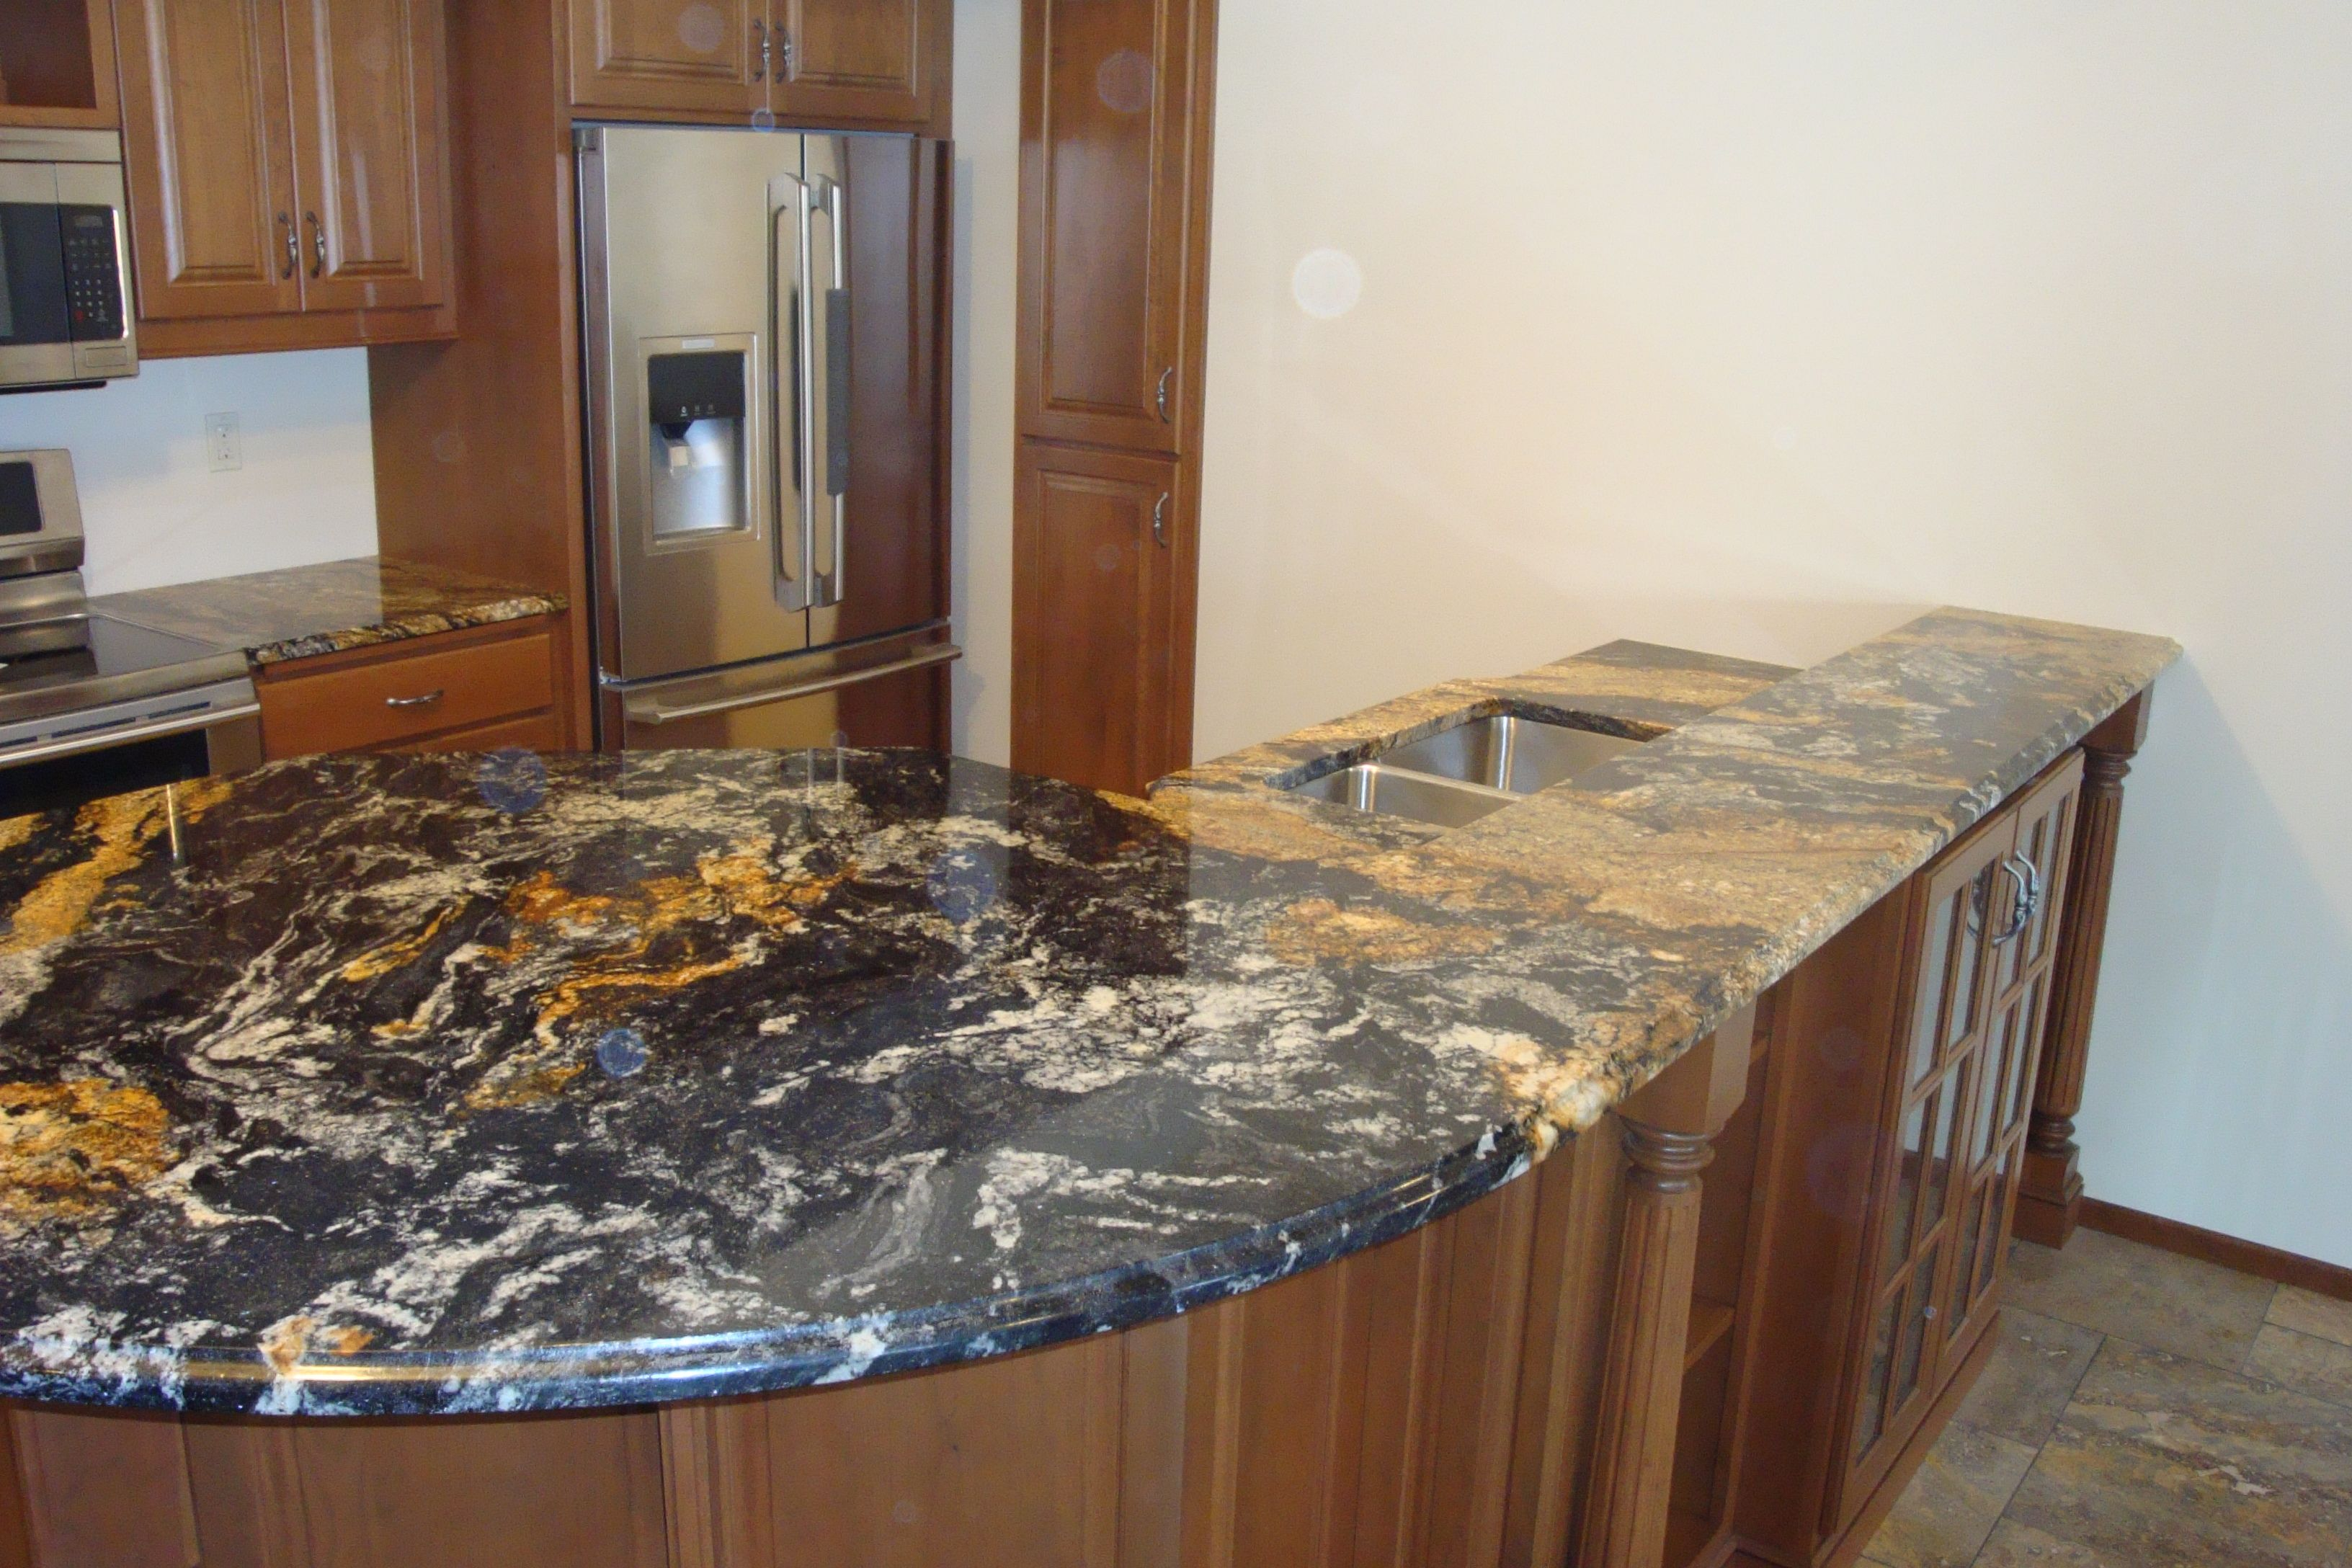 types edges great coun collection beveled granite ogee options formica bullnose countertop molding inch countertops stone kitchen from edge